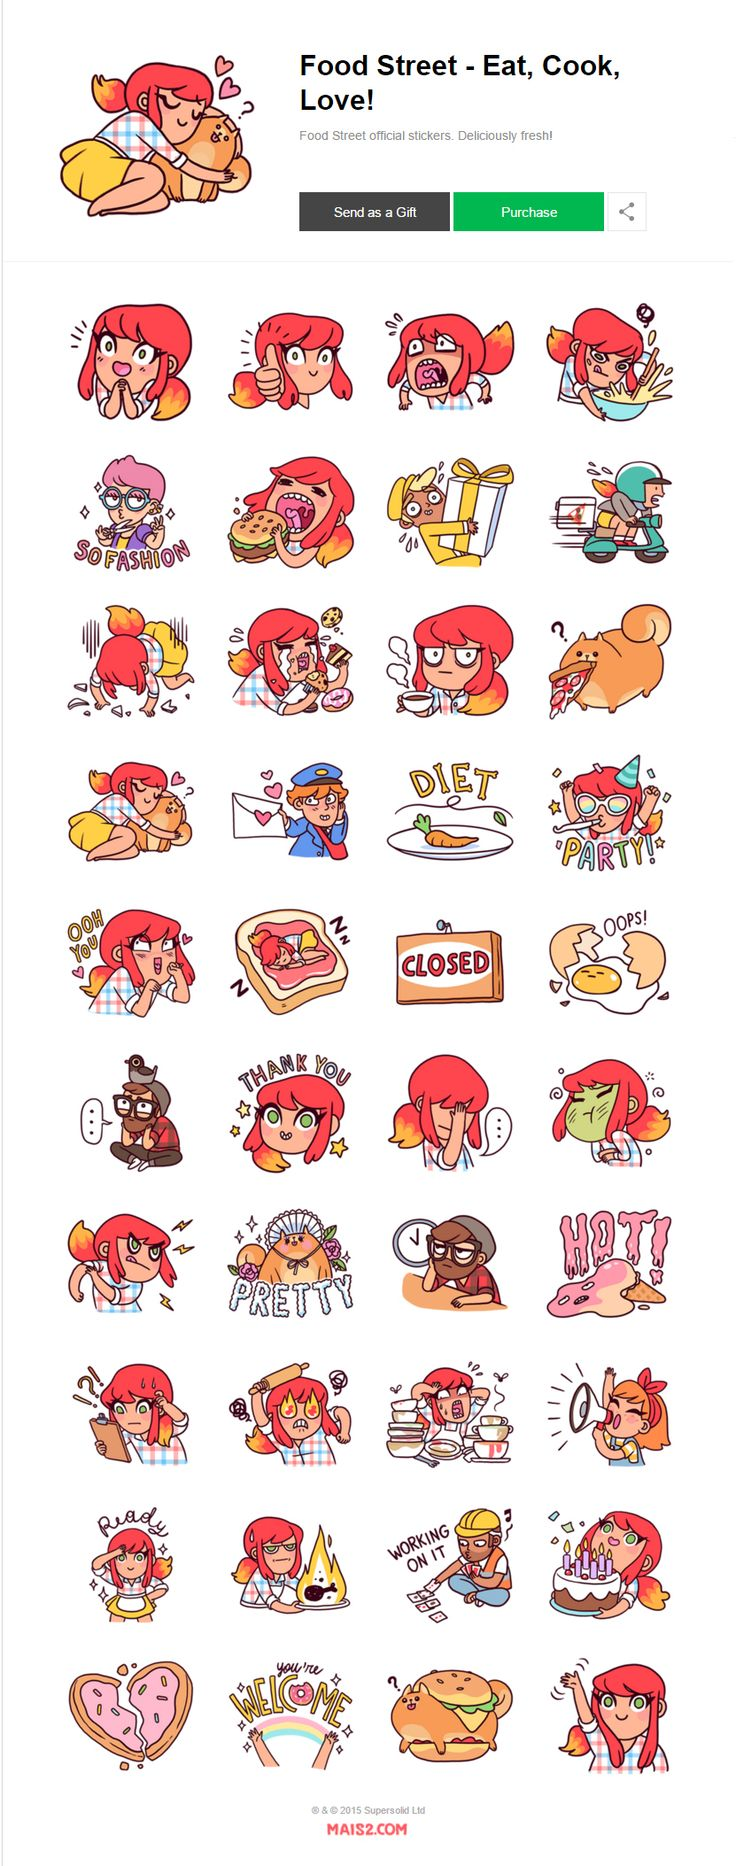 """Sticker set designed for Supersolid Ltd to celebrate the launch of their new game """"Food Street"""" now live on both IOS and Android devices.get the stickers here -- https://store.line.me/stickershop/product/1225634/enand discover mroe about the game here …"""